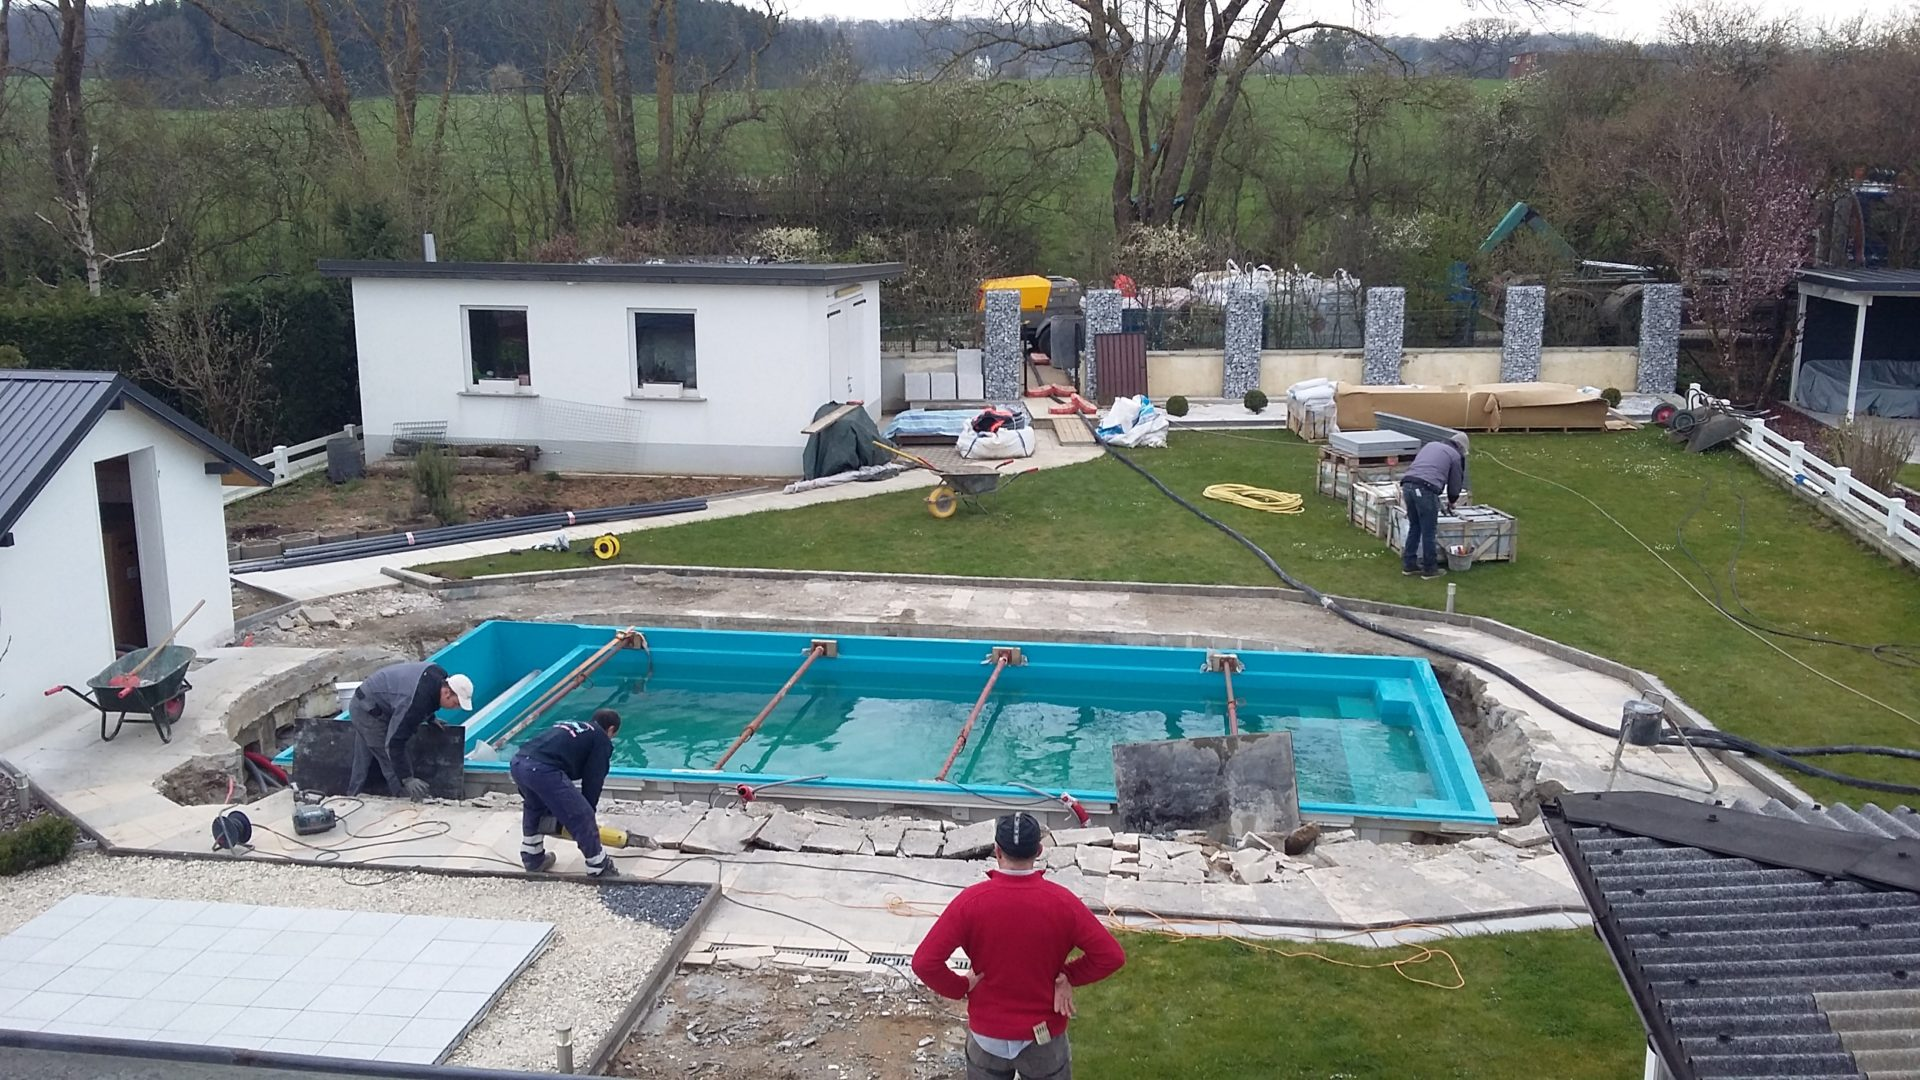 Leisure pools optez pour une piscine en poxy vinylester for Chlore dans la piscine